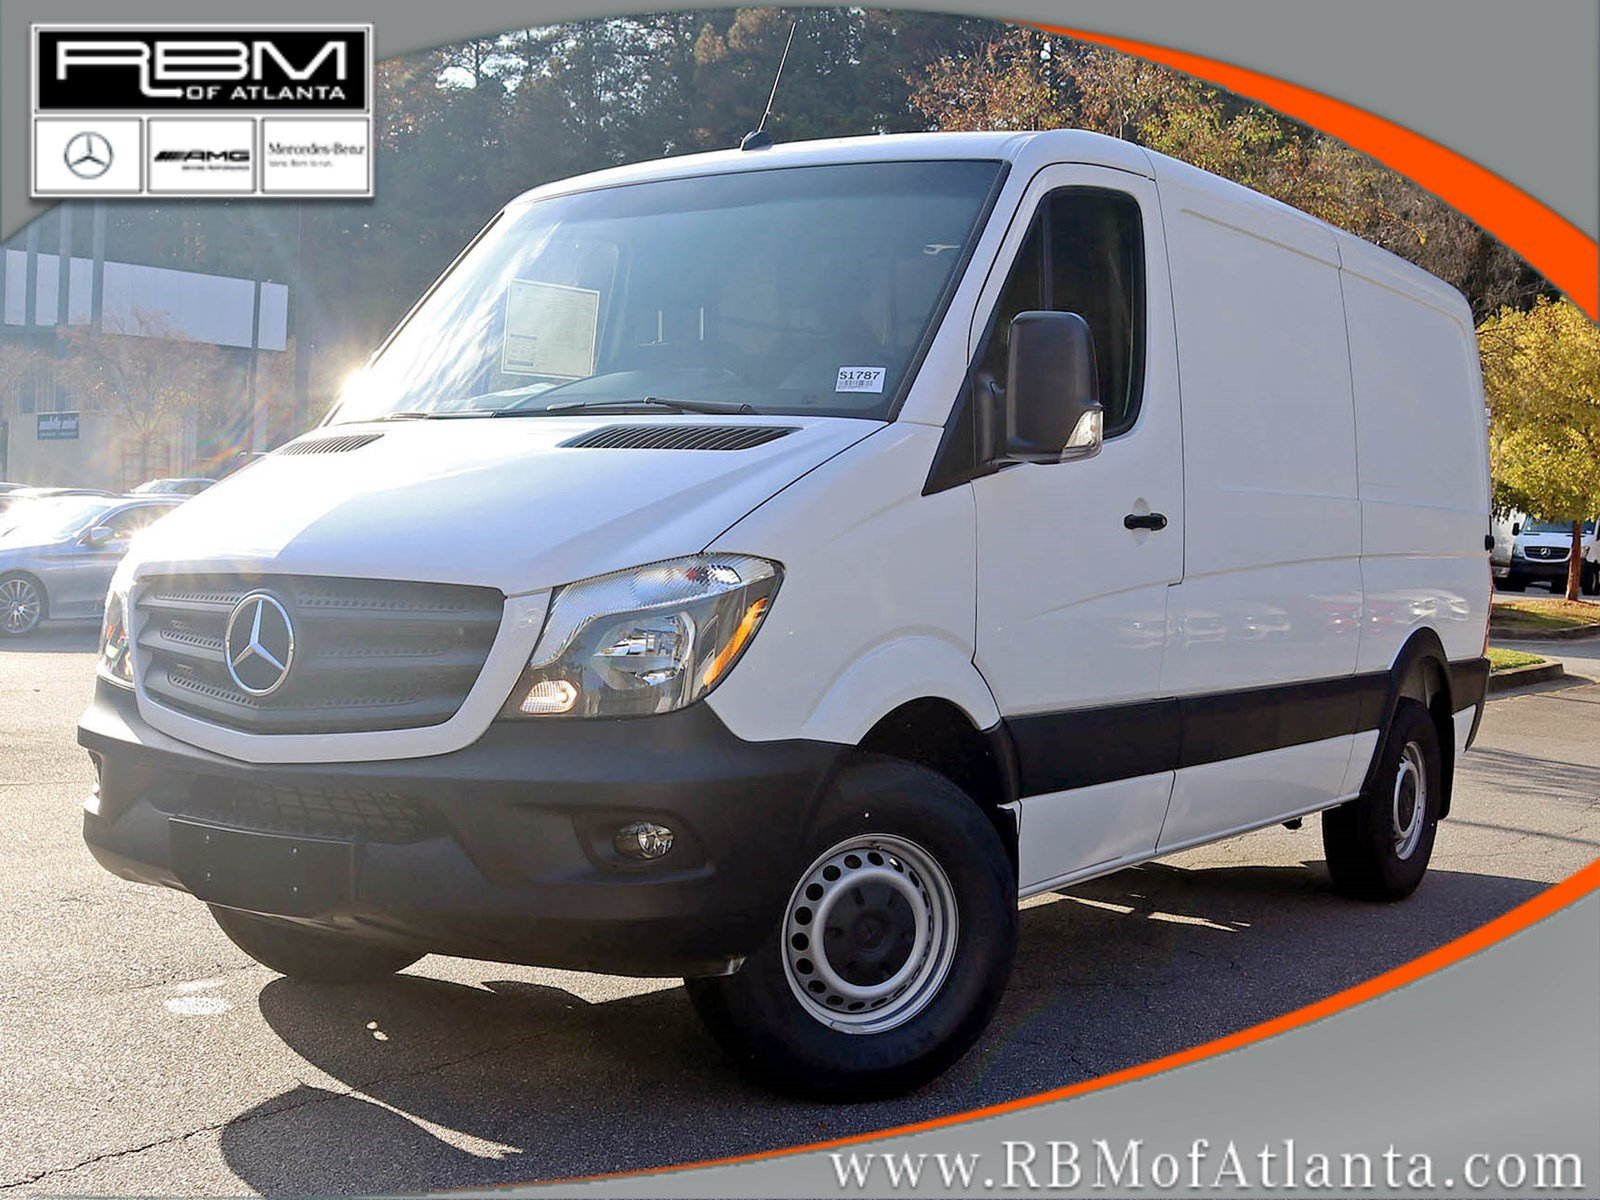 New 2017 mercedes benz sprinter cargo van in atlanta for Mercedes benz customer service email address